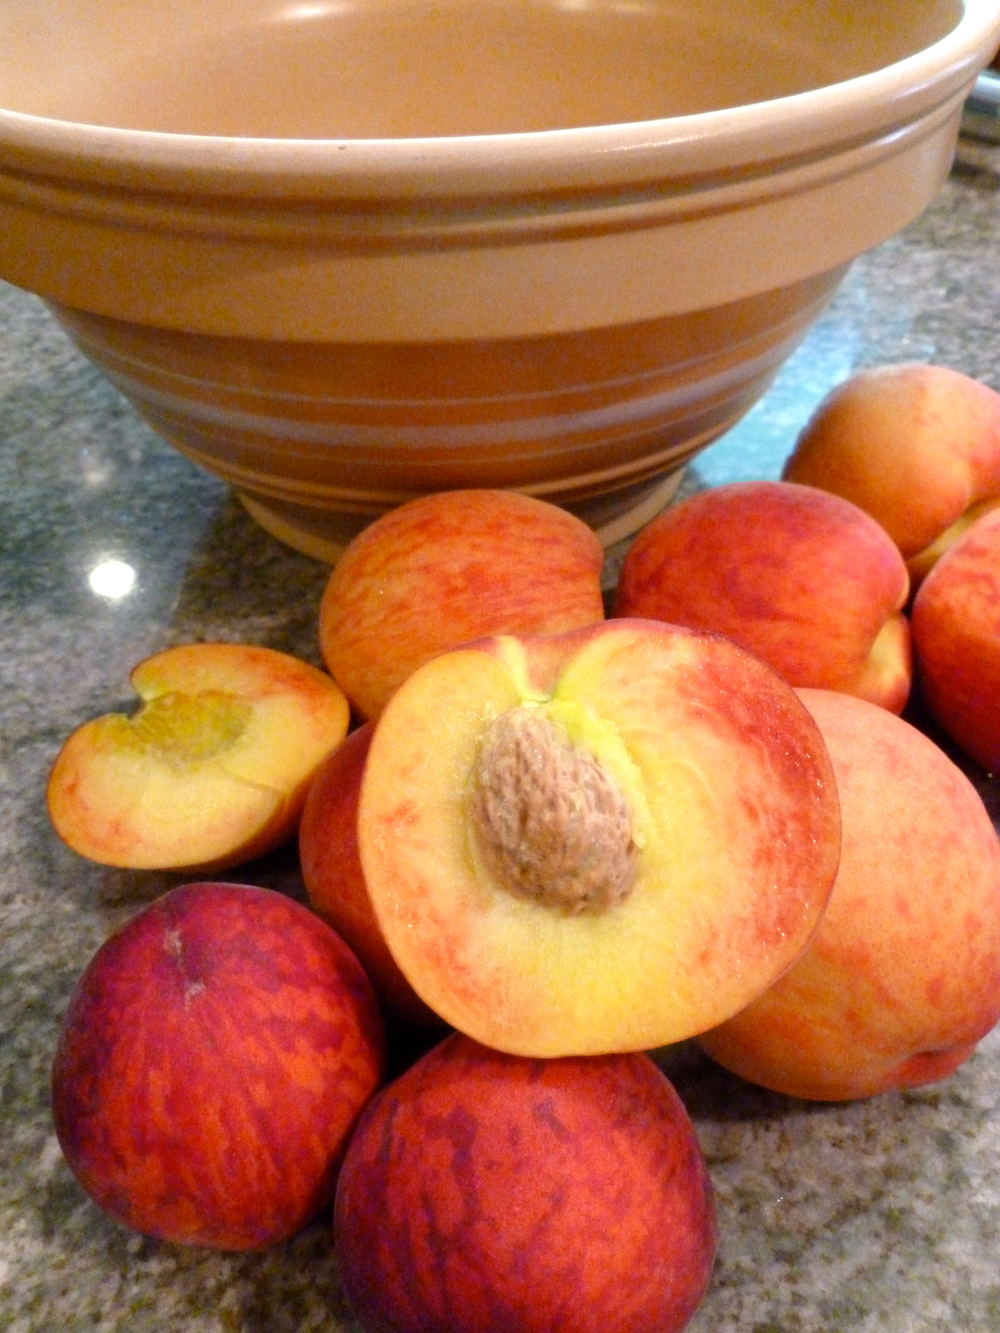 Freestone yellow peach ready for pie baking! See the pretty interior color!